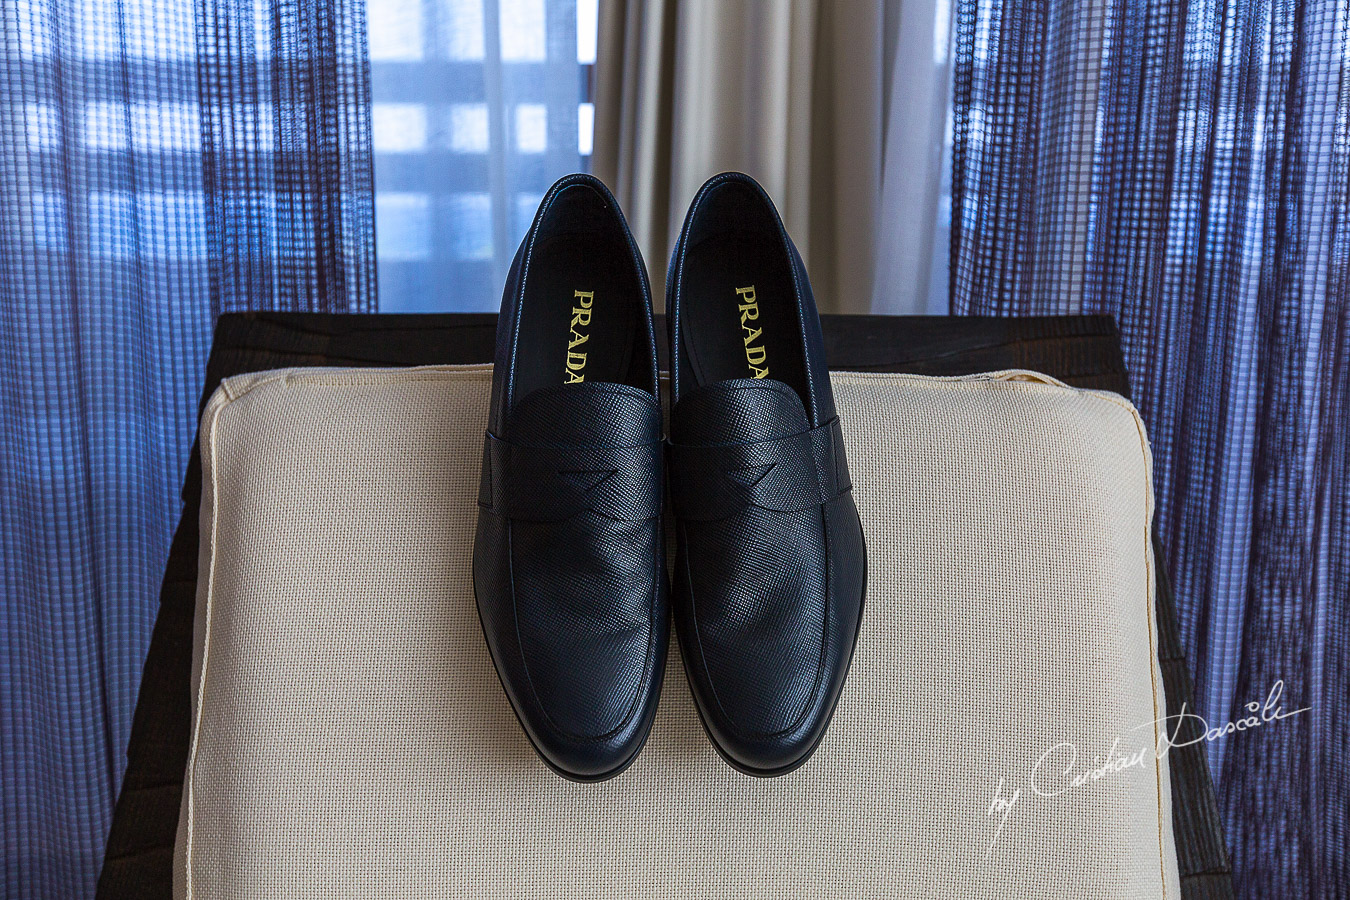 Groom`s shoes photographed at Londa Hotel in Limassol, Cyprus.